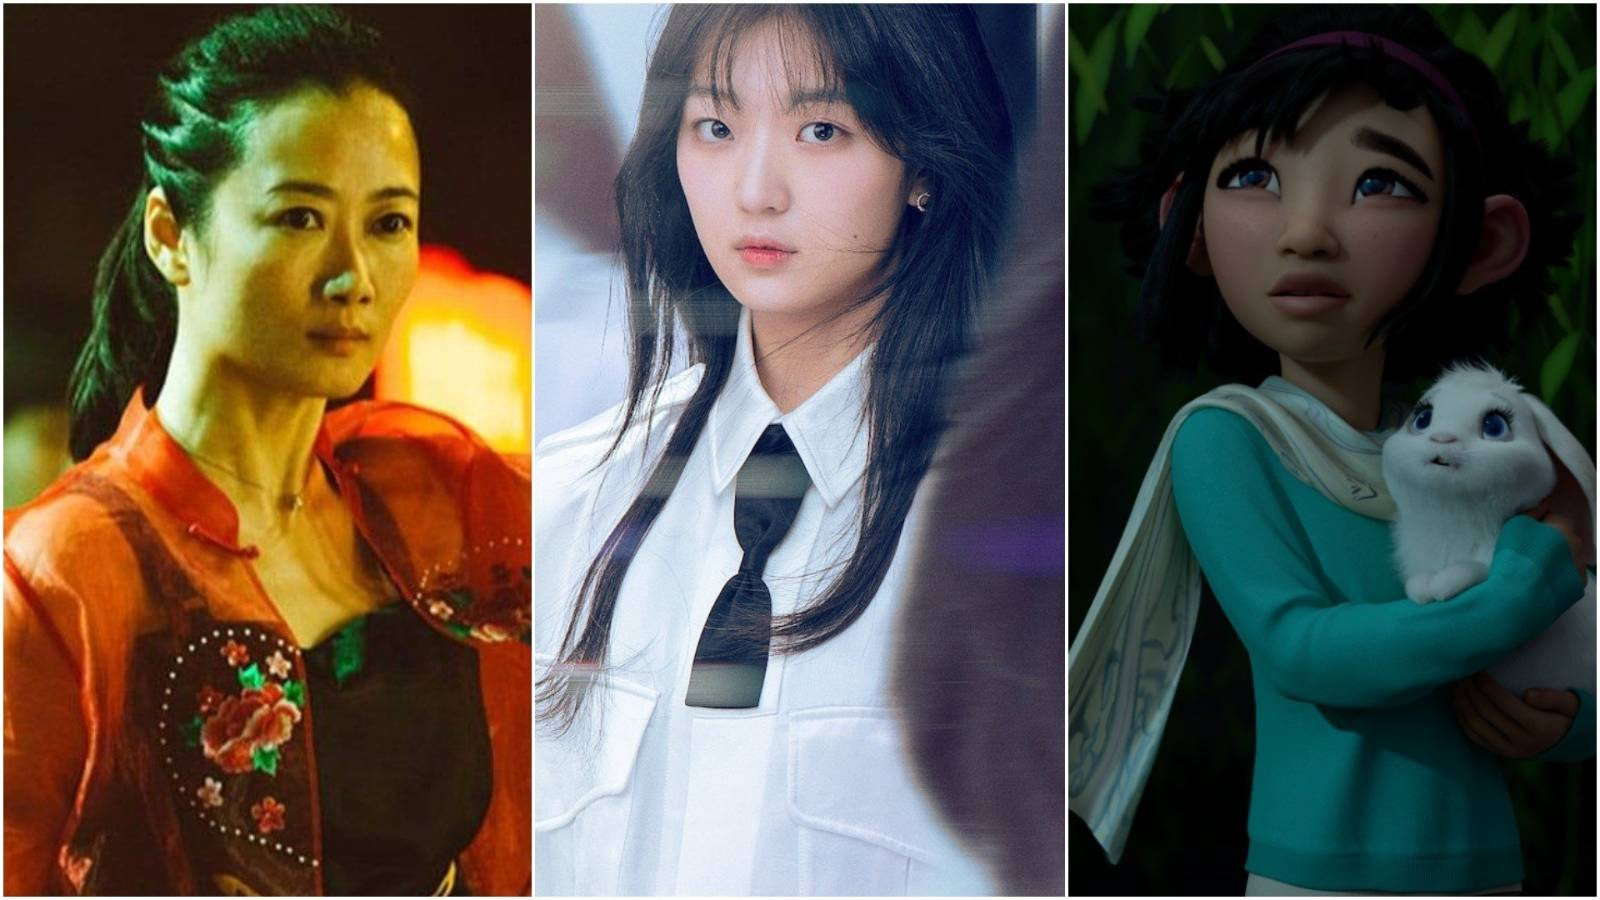 The best Chinese language movies and TV shows to stream right now